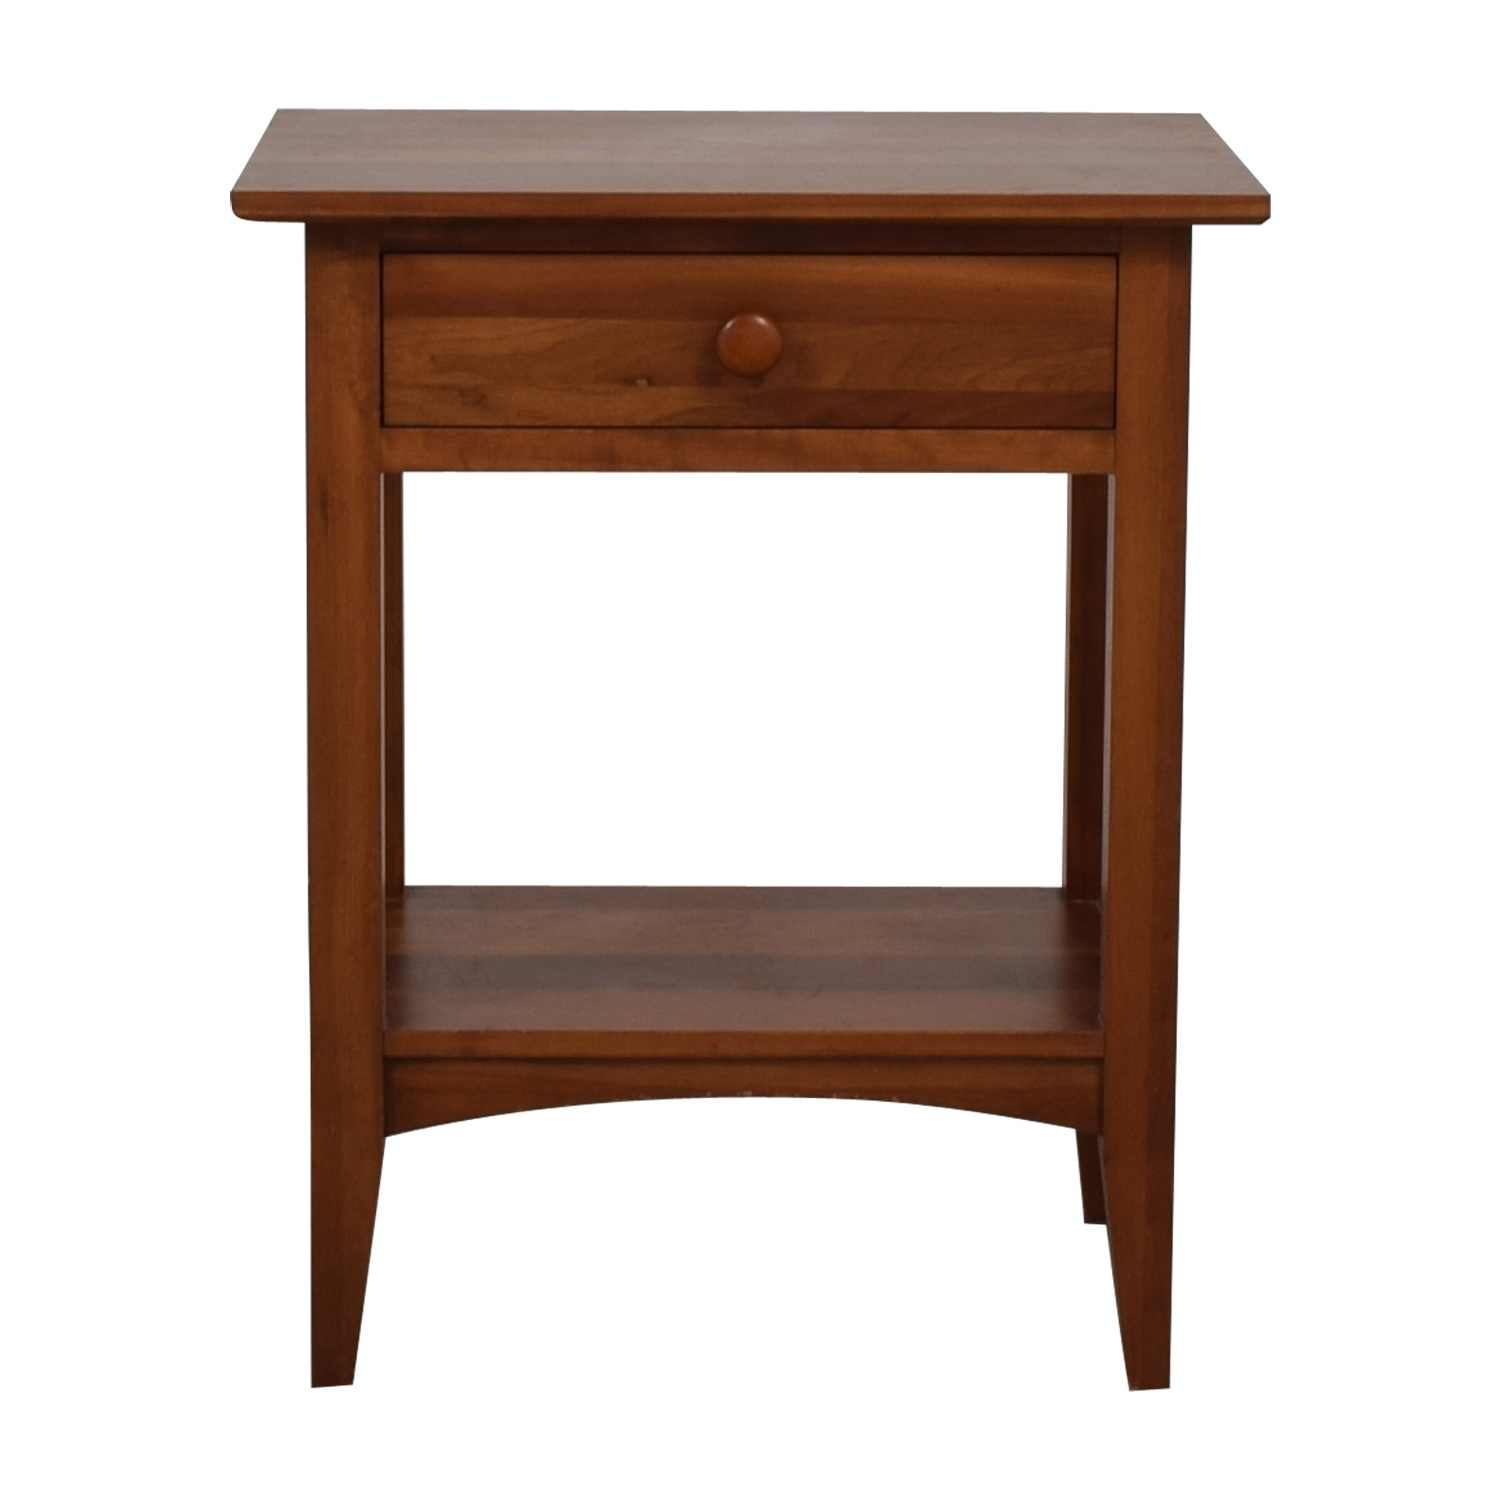 Ethan Allen Ethan Allen Single Drawer Wood Nightstand price